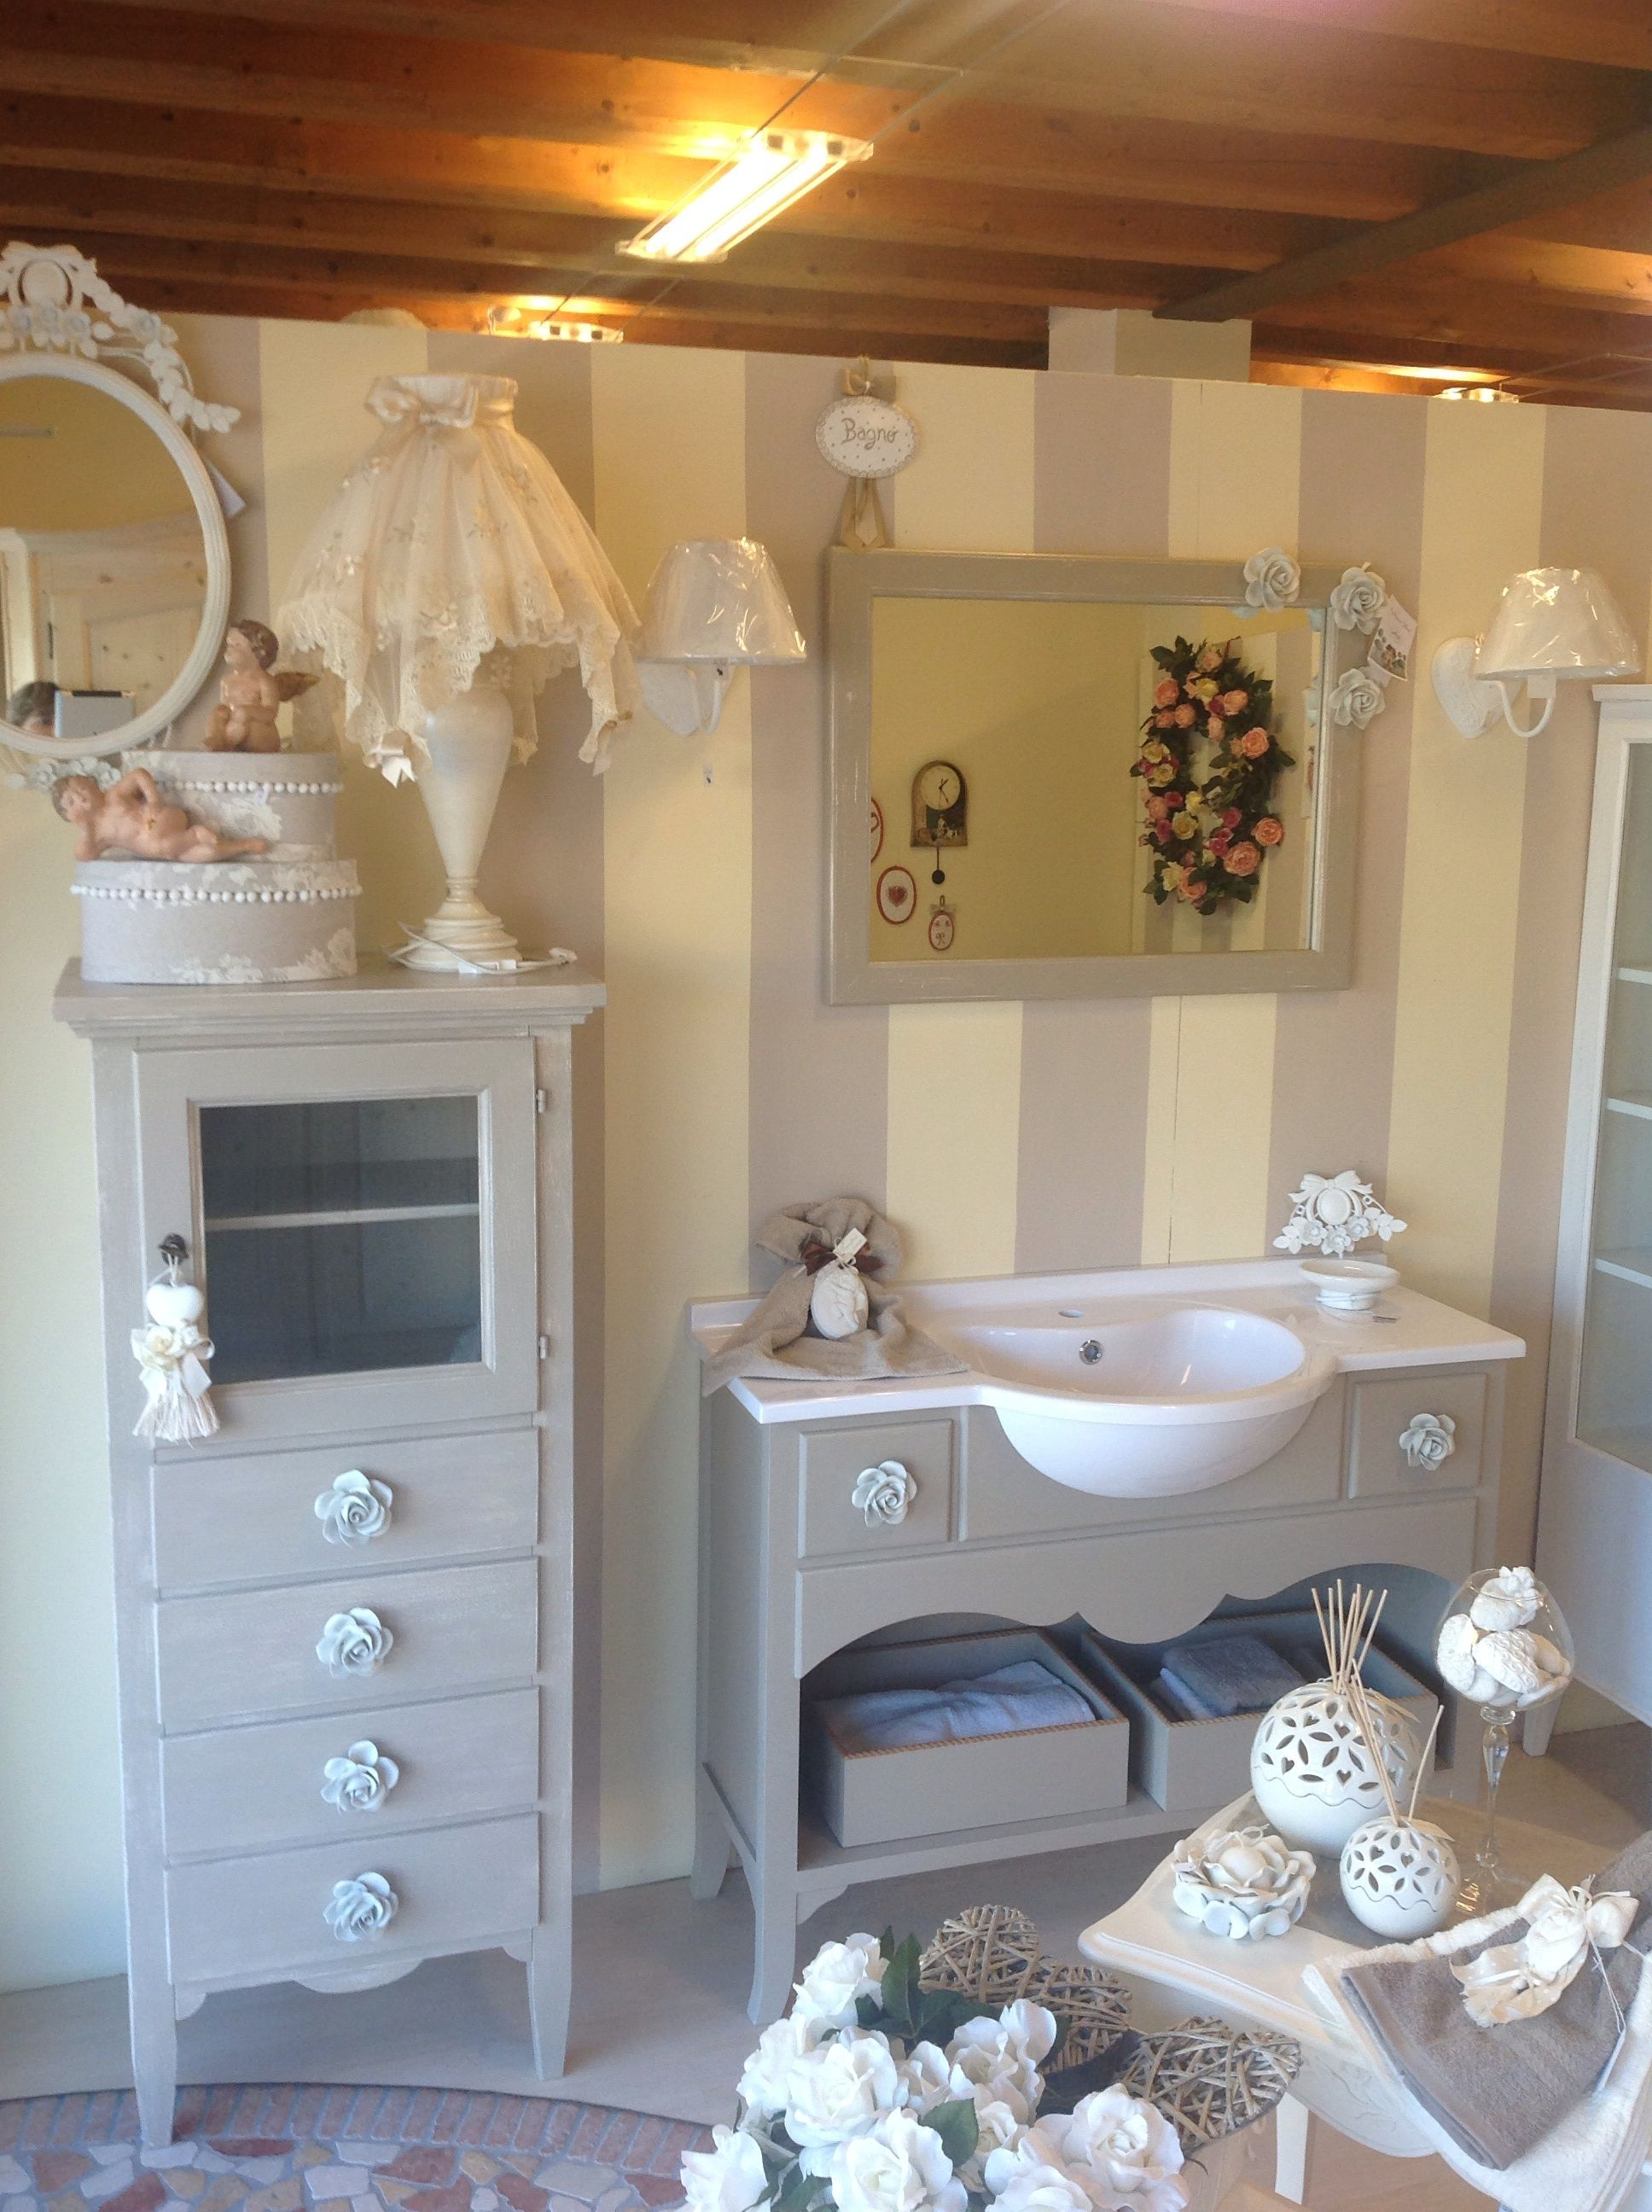 Bagno stile provenzale  case stile provenzale  Pinterest  Shabby, Provence style and Industrial